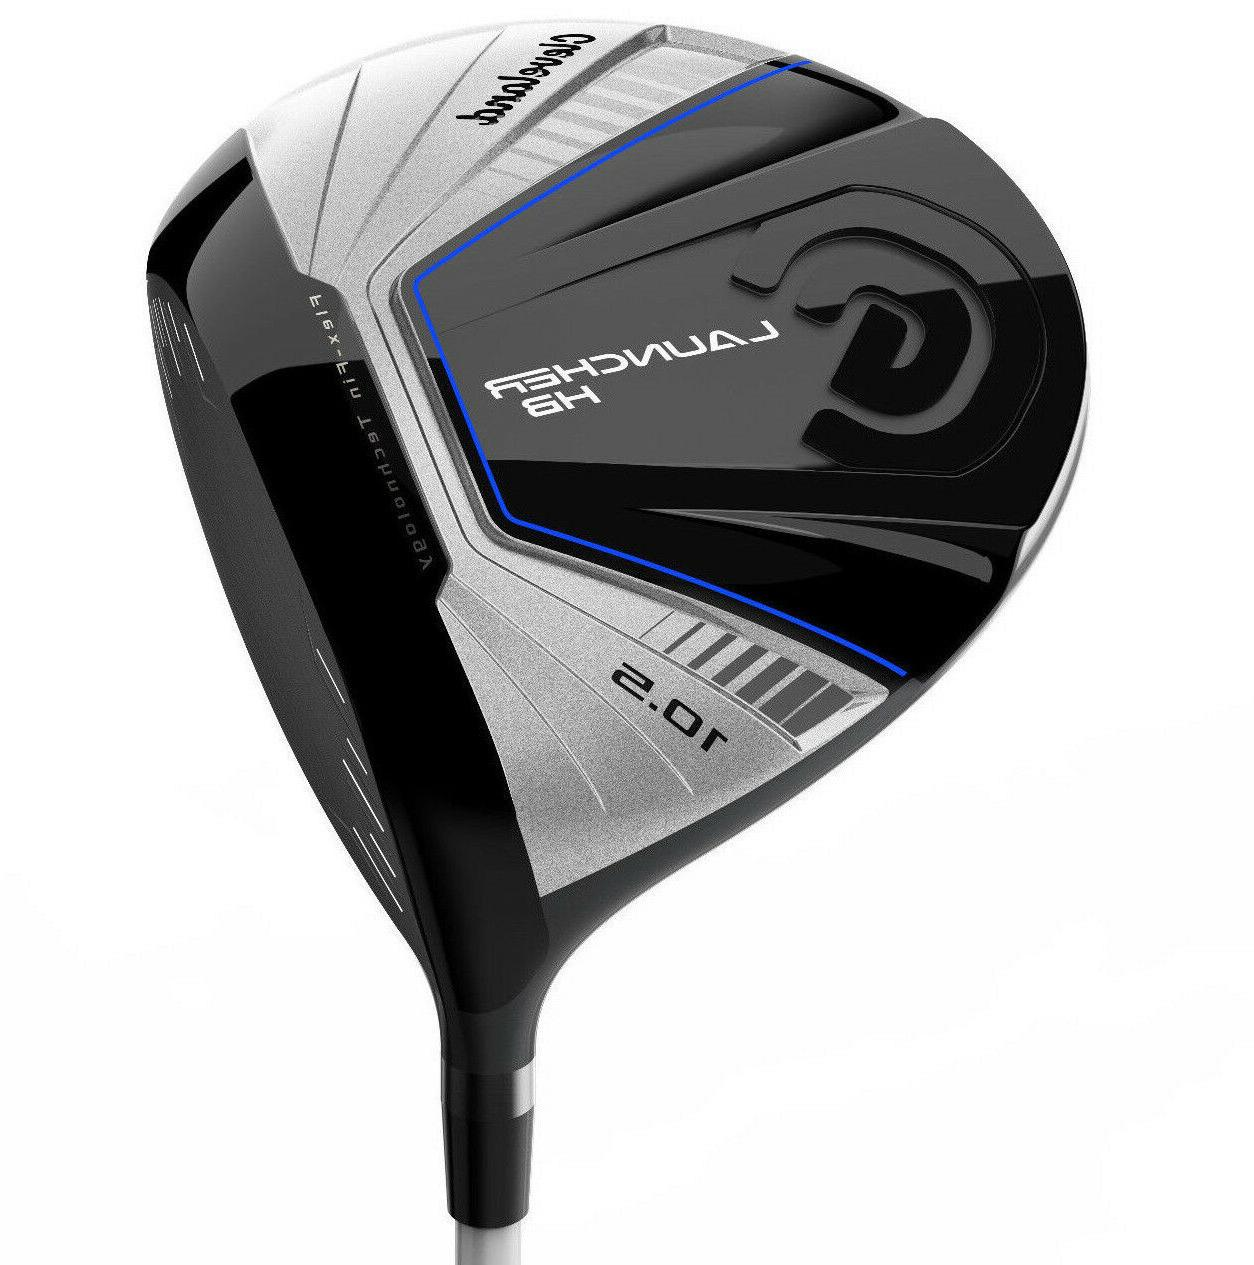 new launcher hb driver pick loft